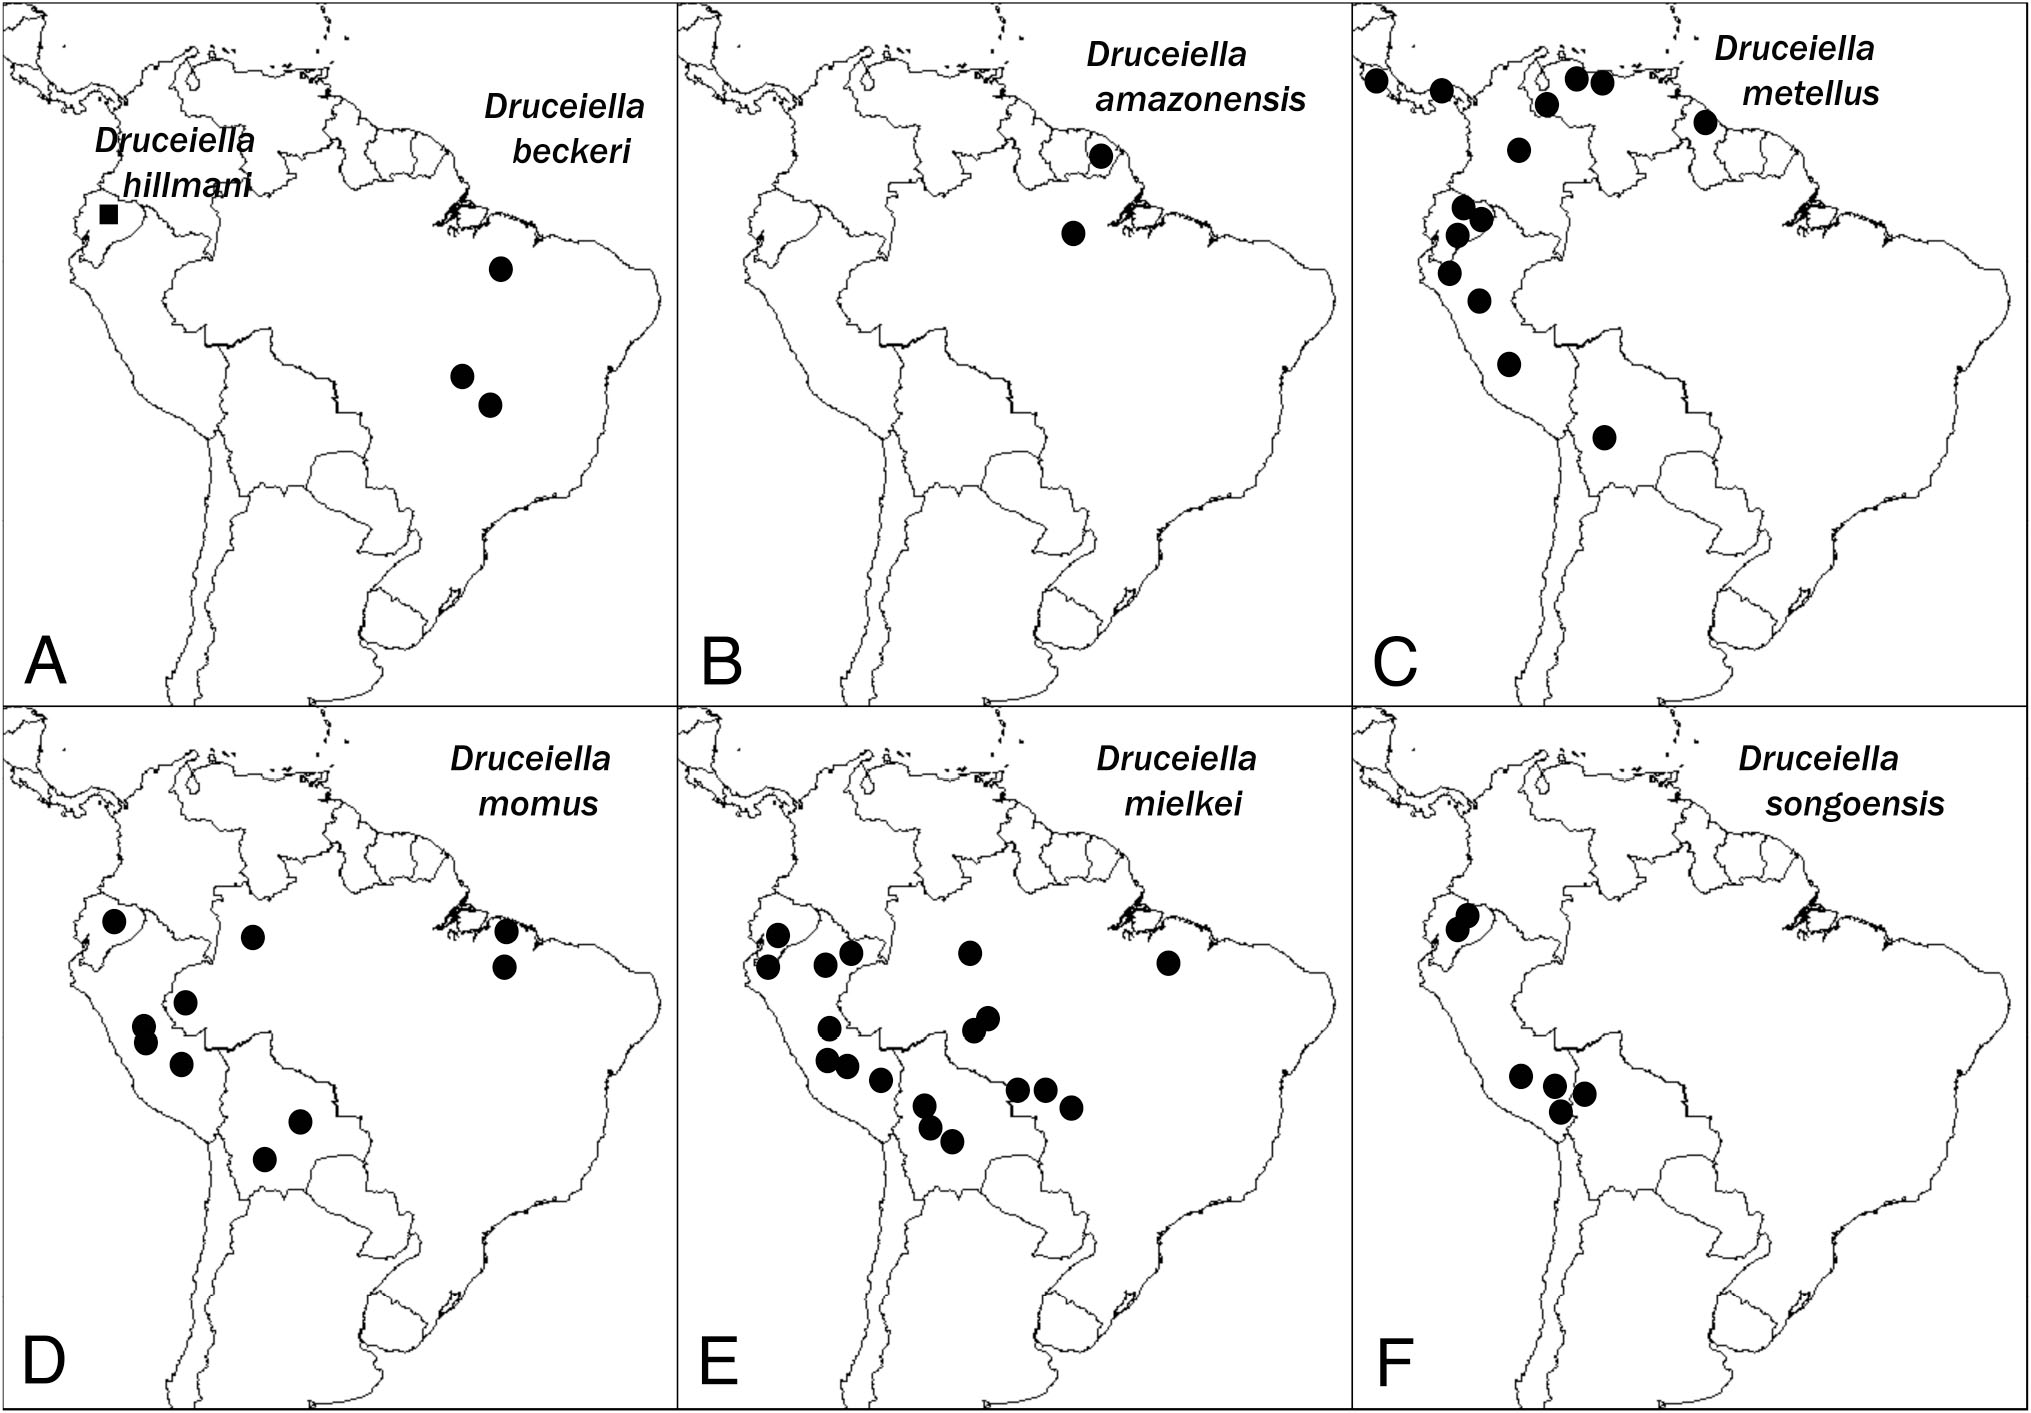 Taxonomic Revision and Vicariance Biogeography of the Central and